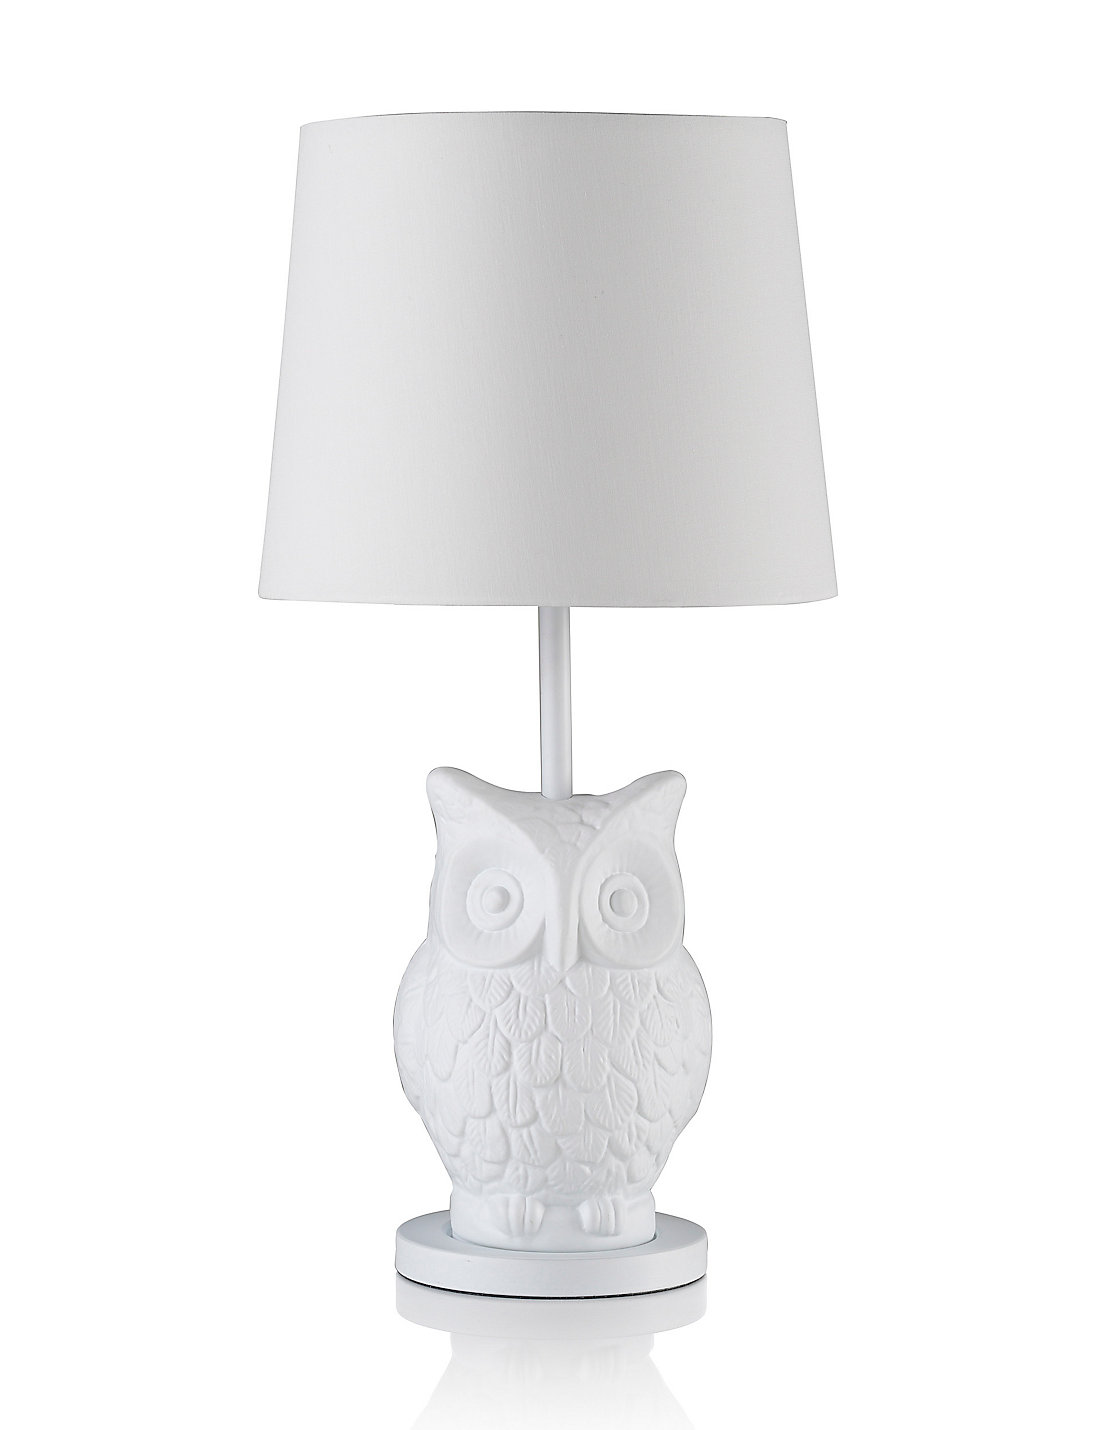 Exceptional Owl Table Lamp U2013 Mysterious Addition To Your Home